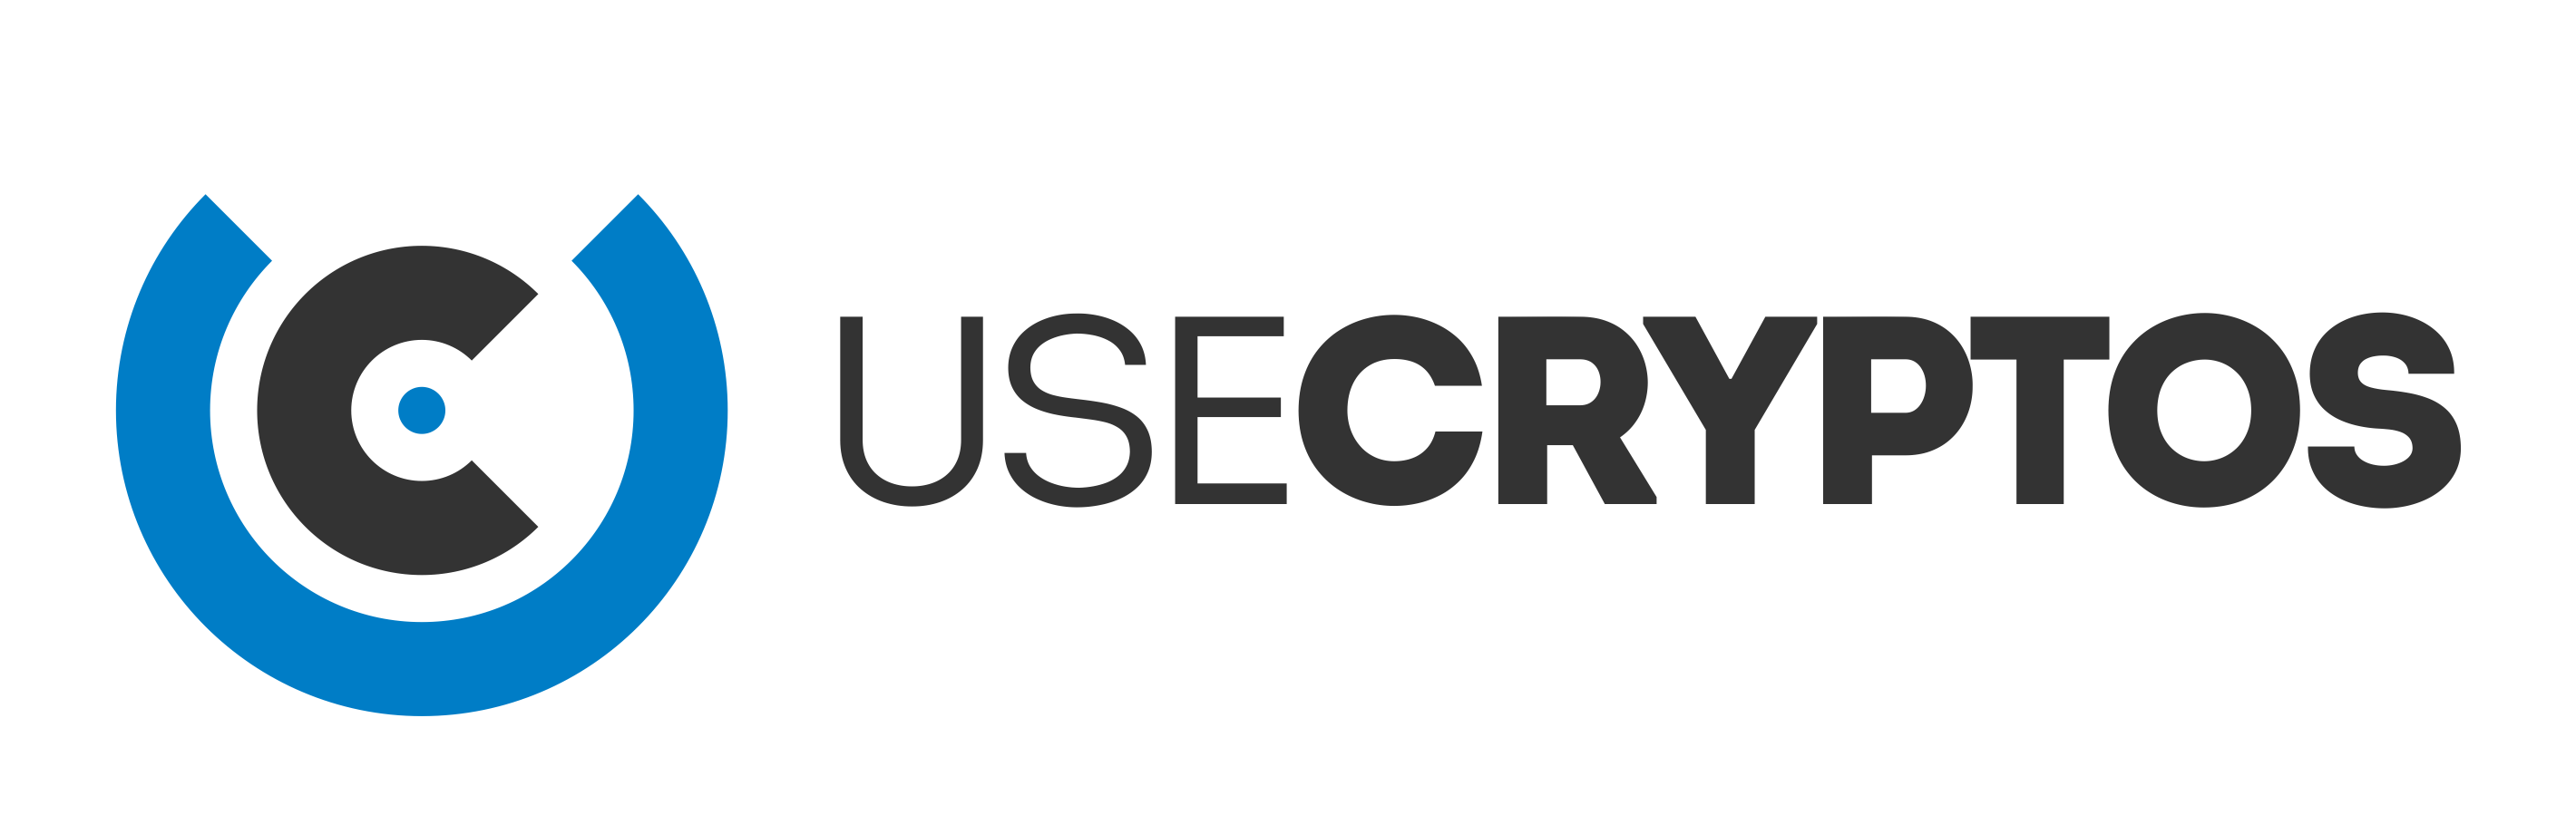 UseCryptos - Tools for Cryptocurrencies logo